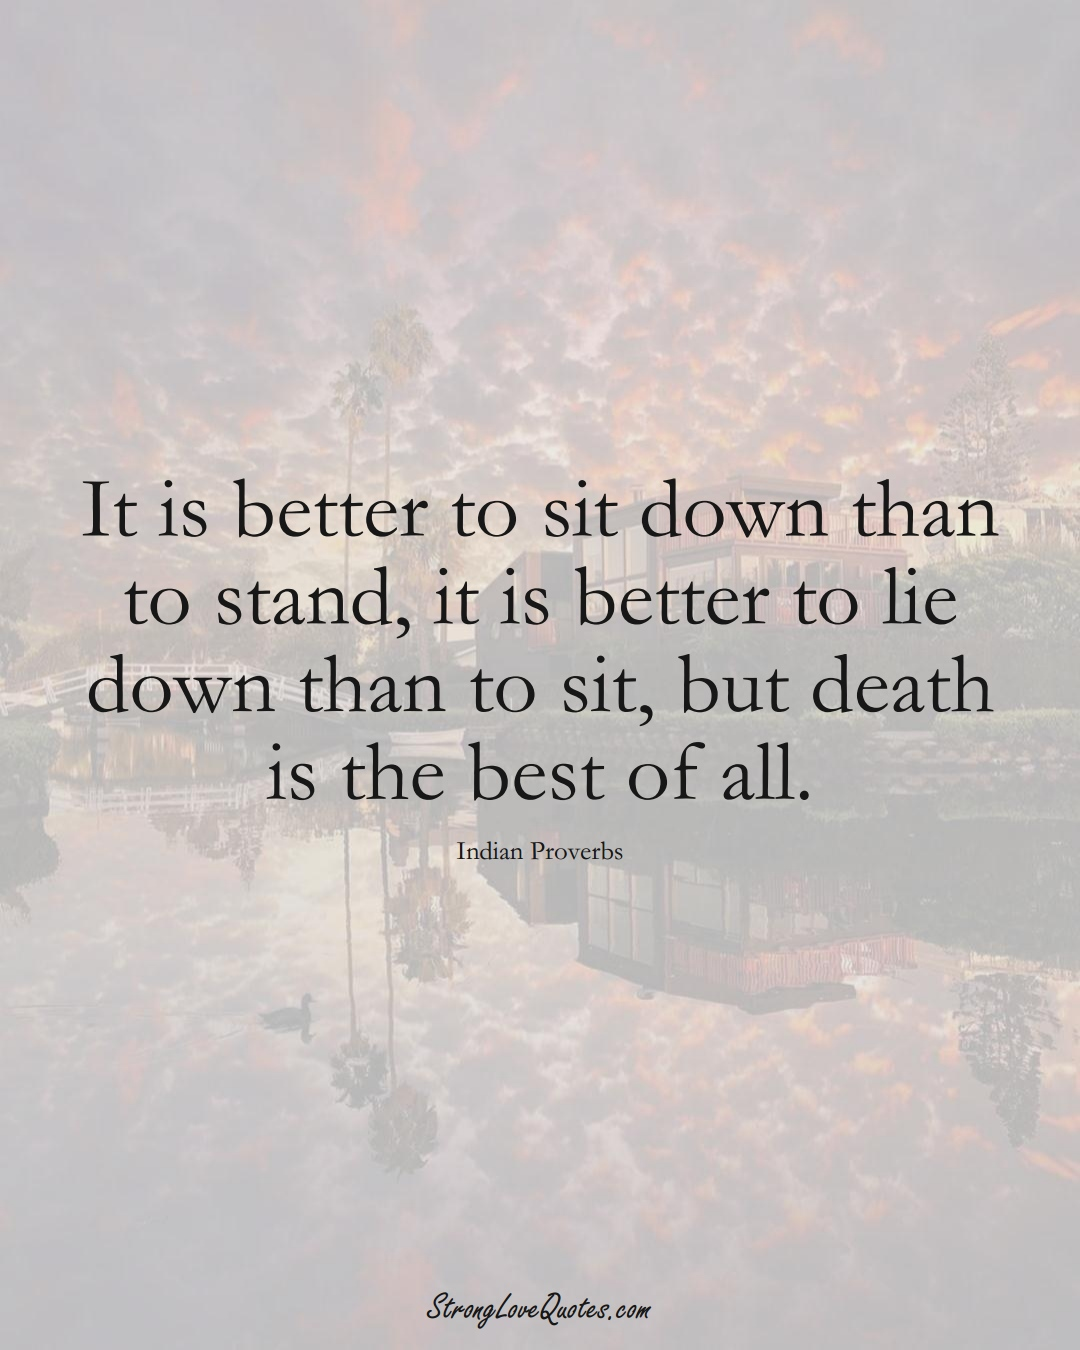 It is better to sit down than to stand, it is better to lie down than to sit, but death is the best of all. (Indian Sayings);  #AsianSayings